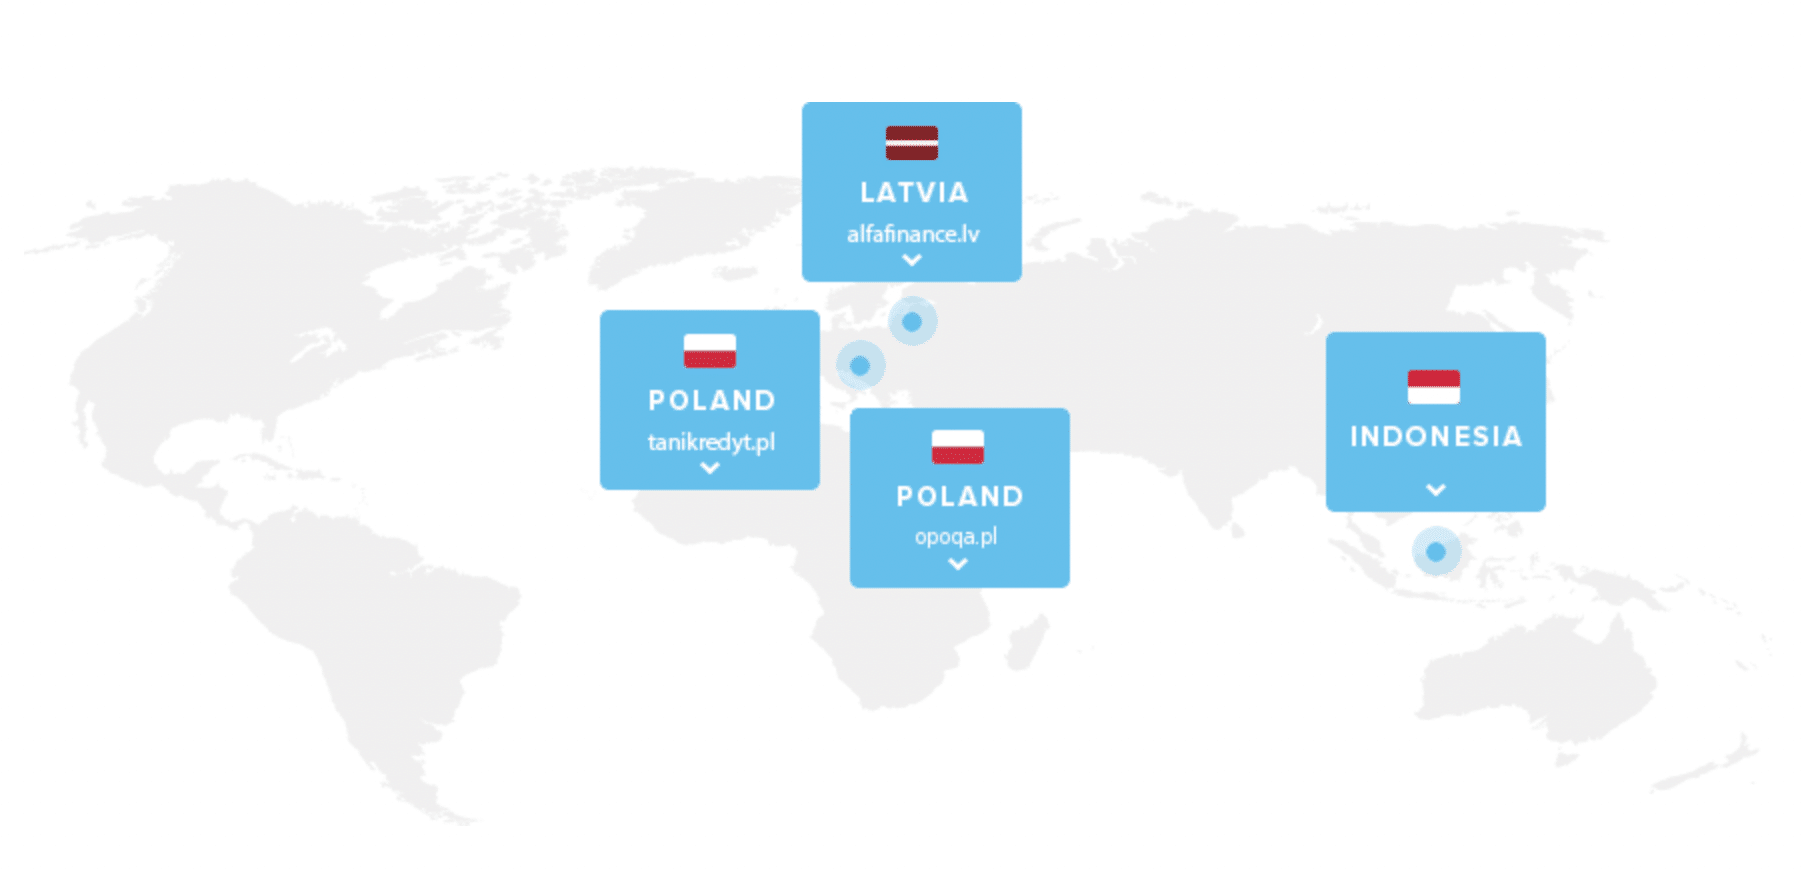 Image of the world map showing loan originators on DoFinance by country